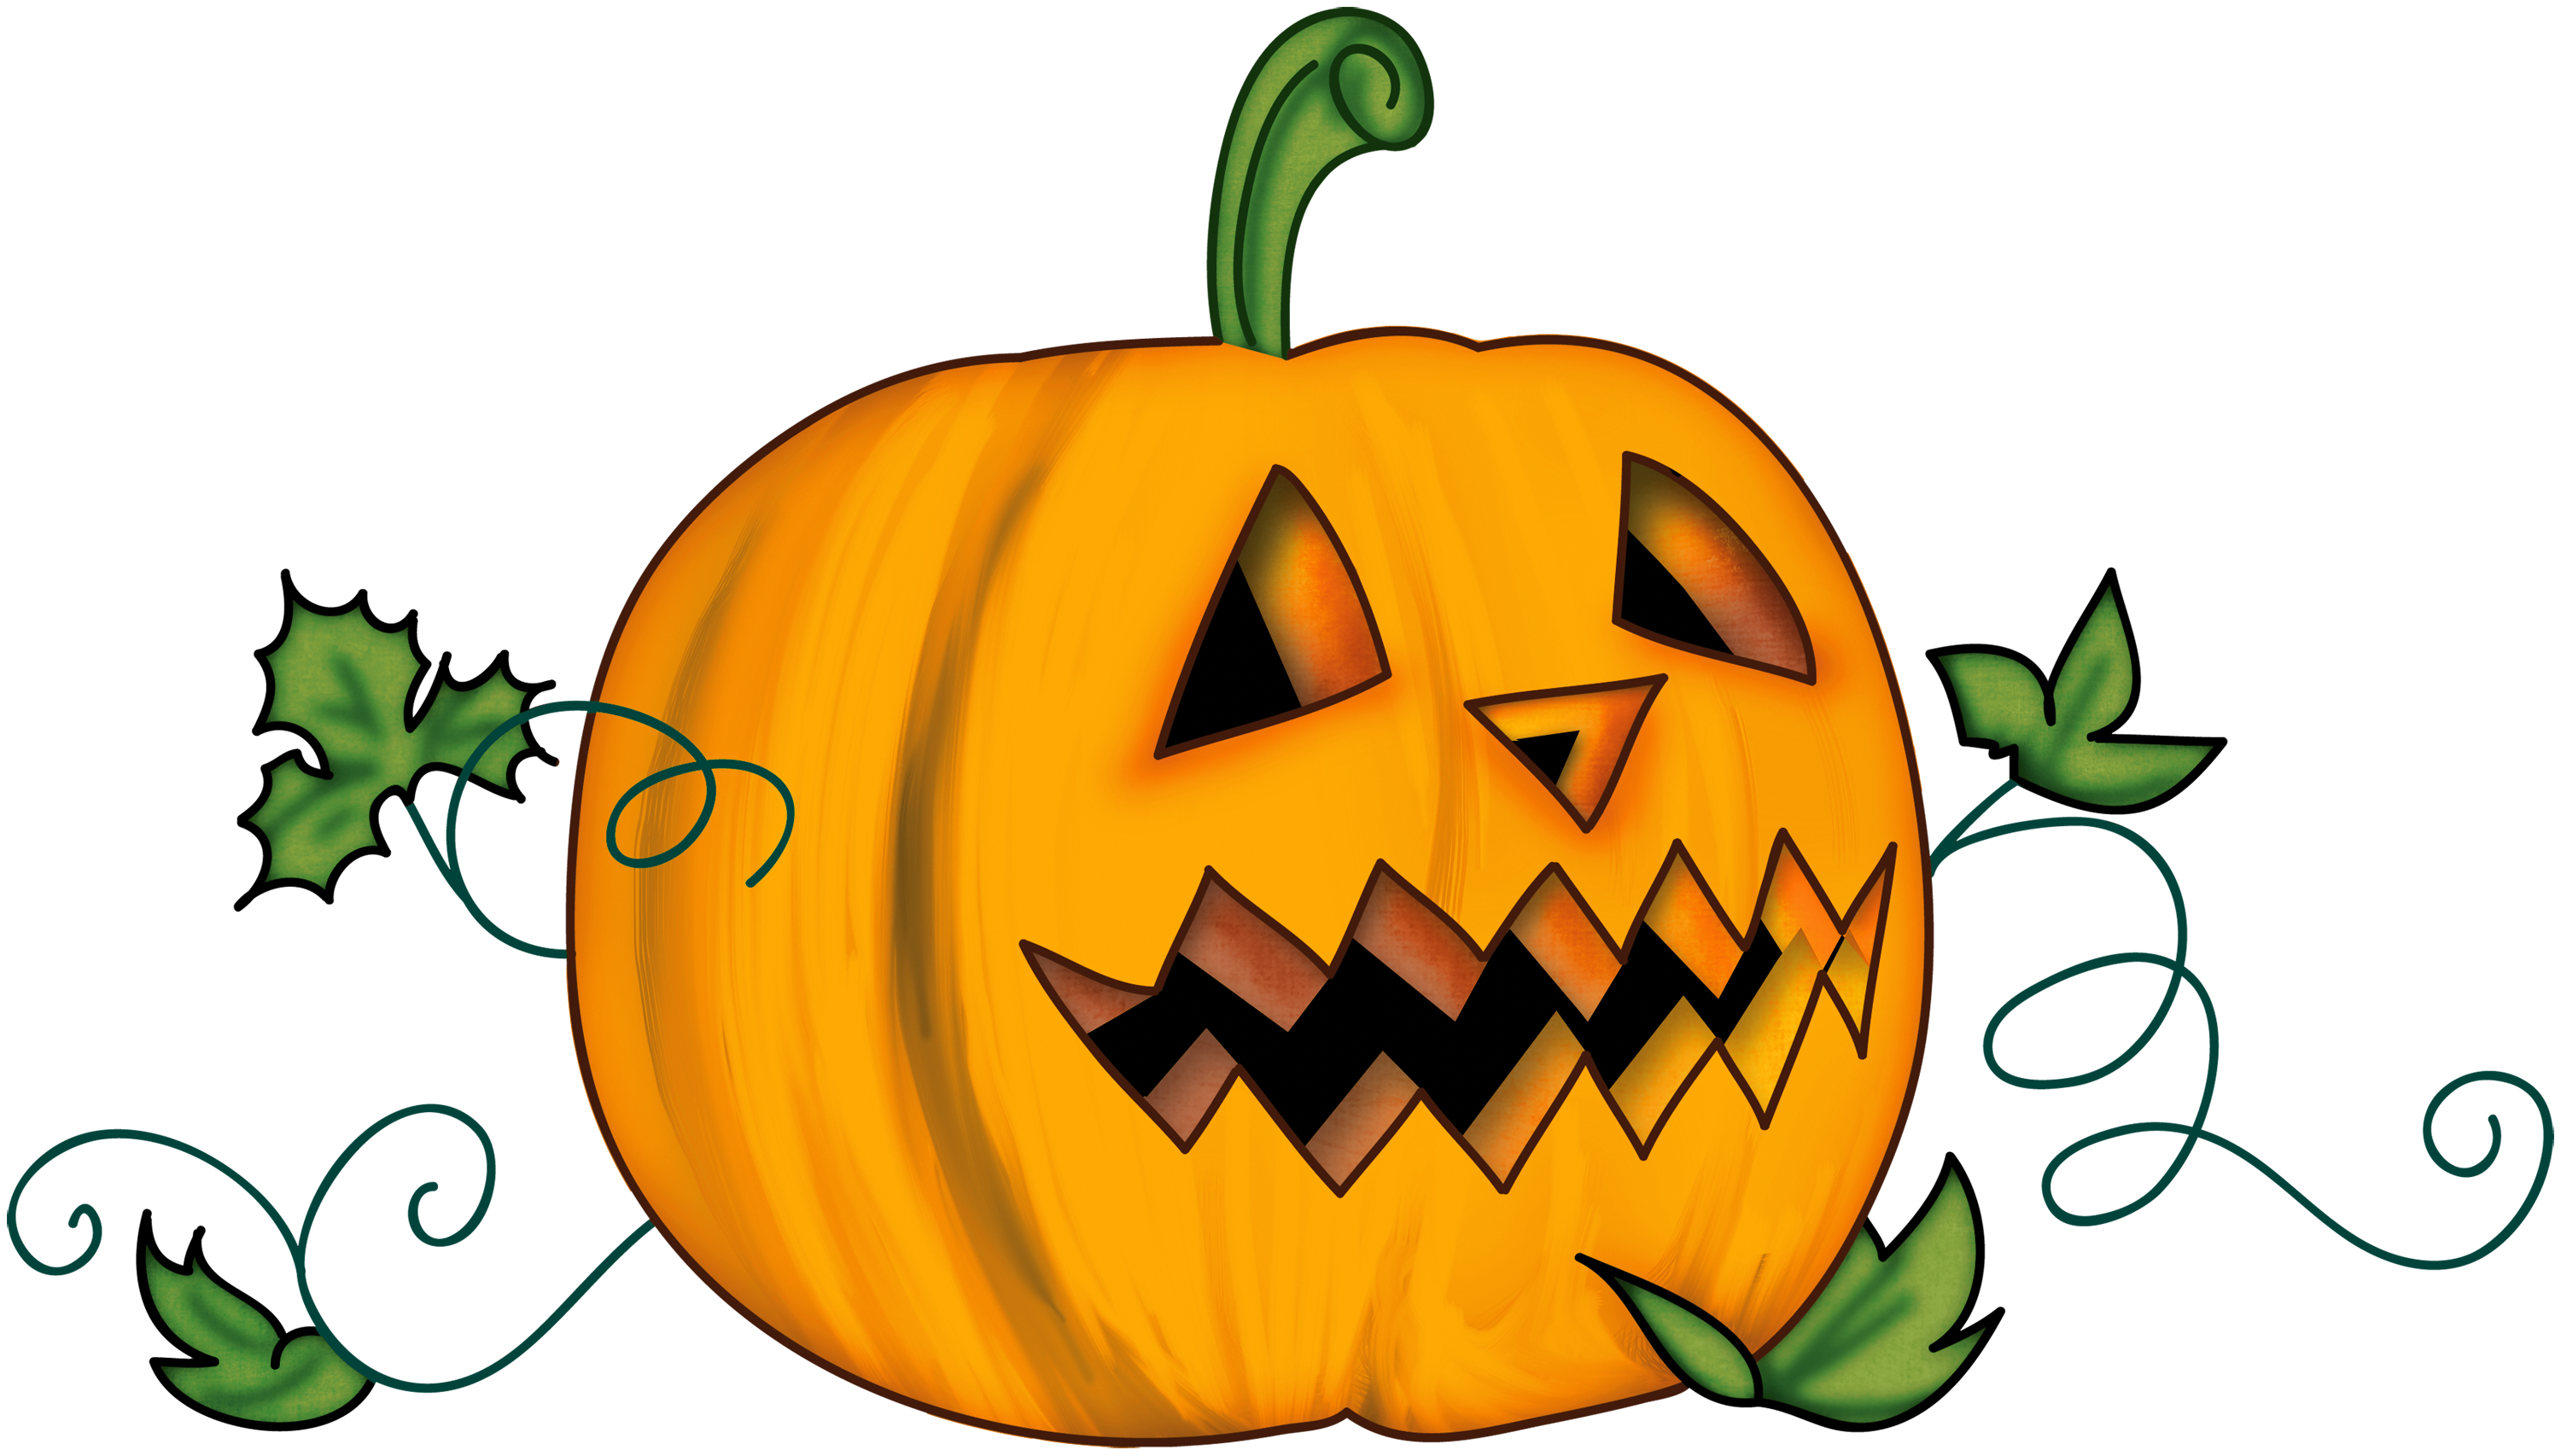 Free pumpkin cartoon clipart images halloween png black and white download Free Pumpkin Clipart at GetDrawings.com | Free for personal use Free ... png black and white download